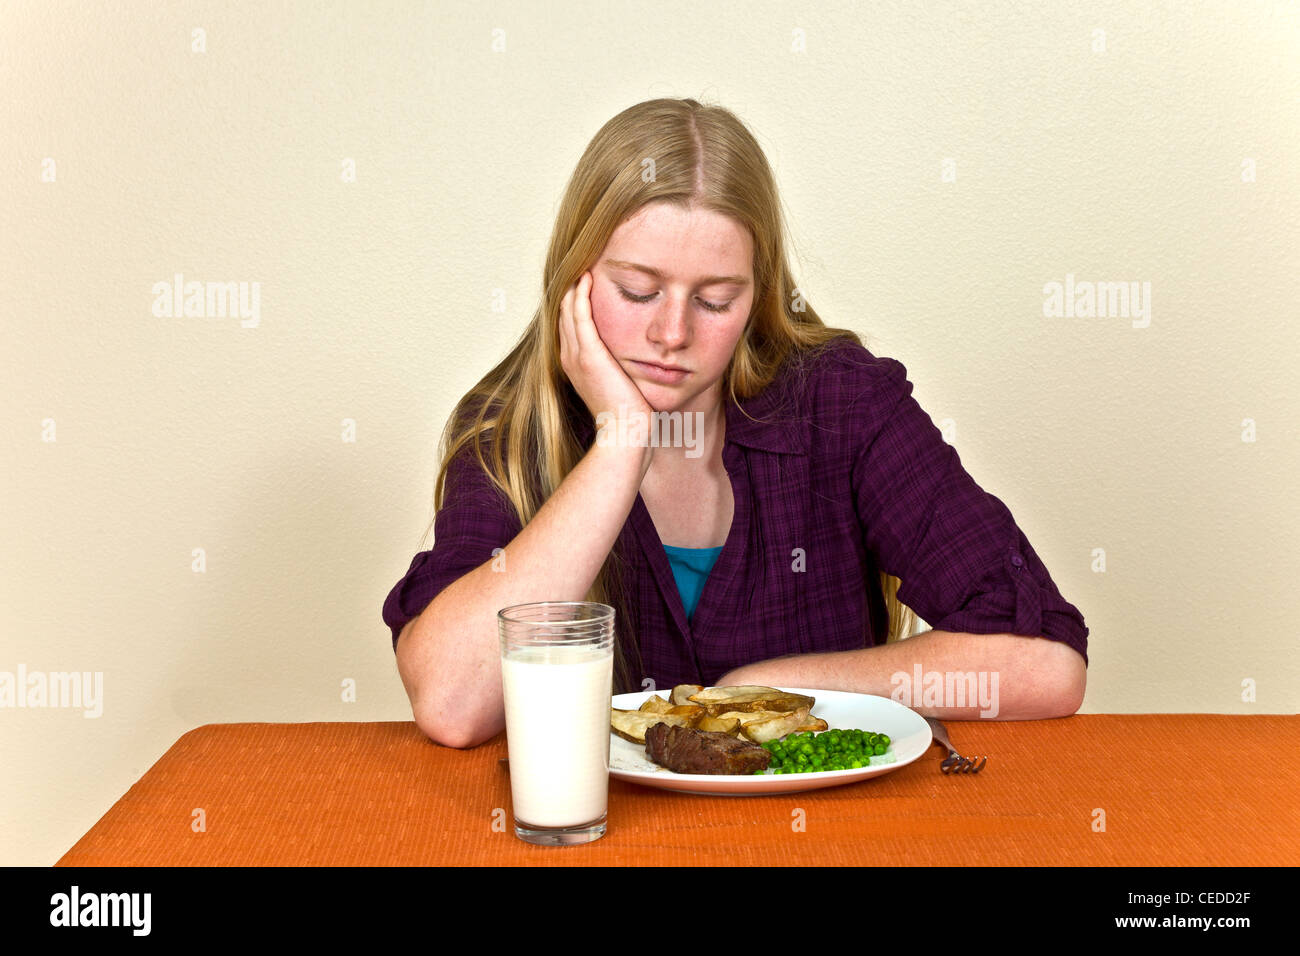 Strong willed stubborn Unhappy Young Caucasian 14-15 year old Teenage girl Sitting at table unhealthy attitude towards - Stock Image